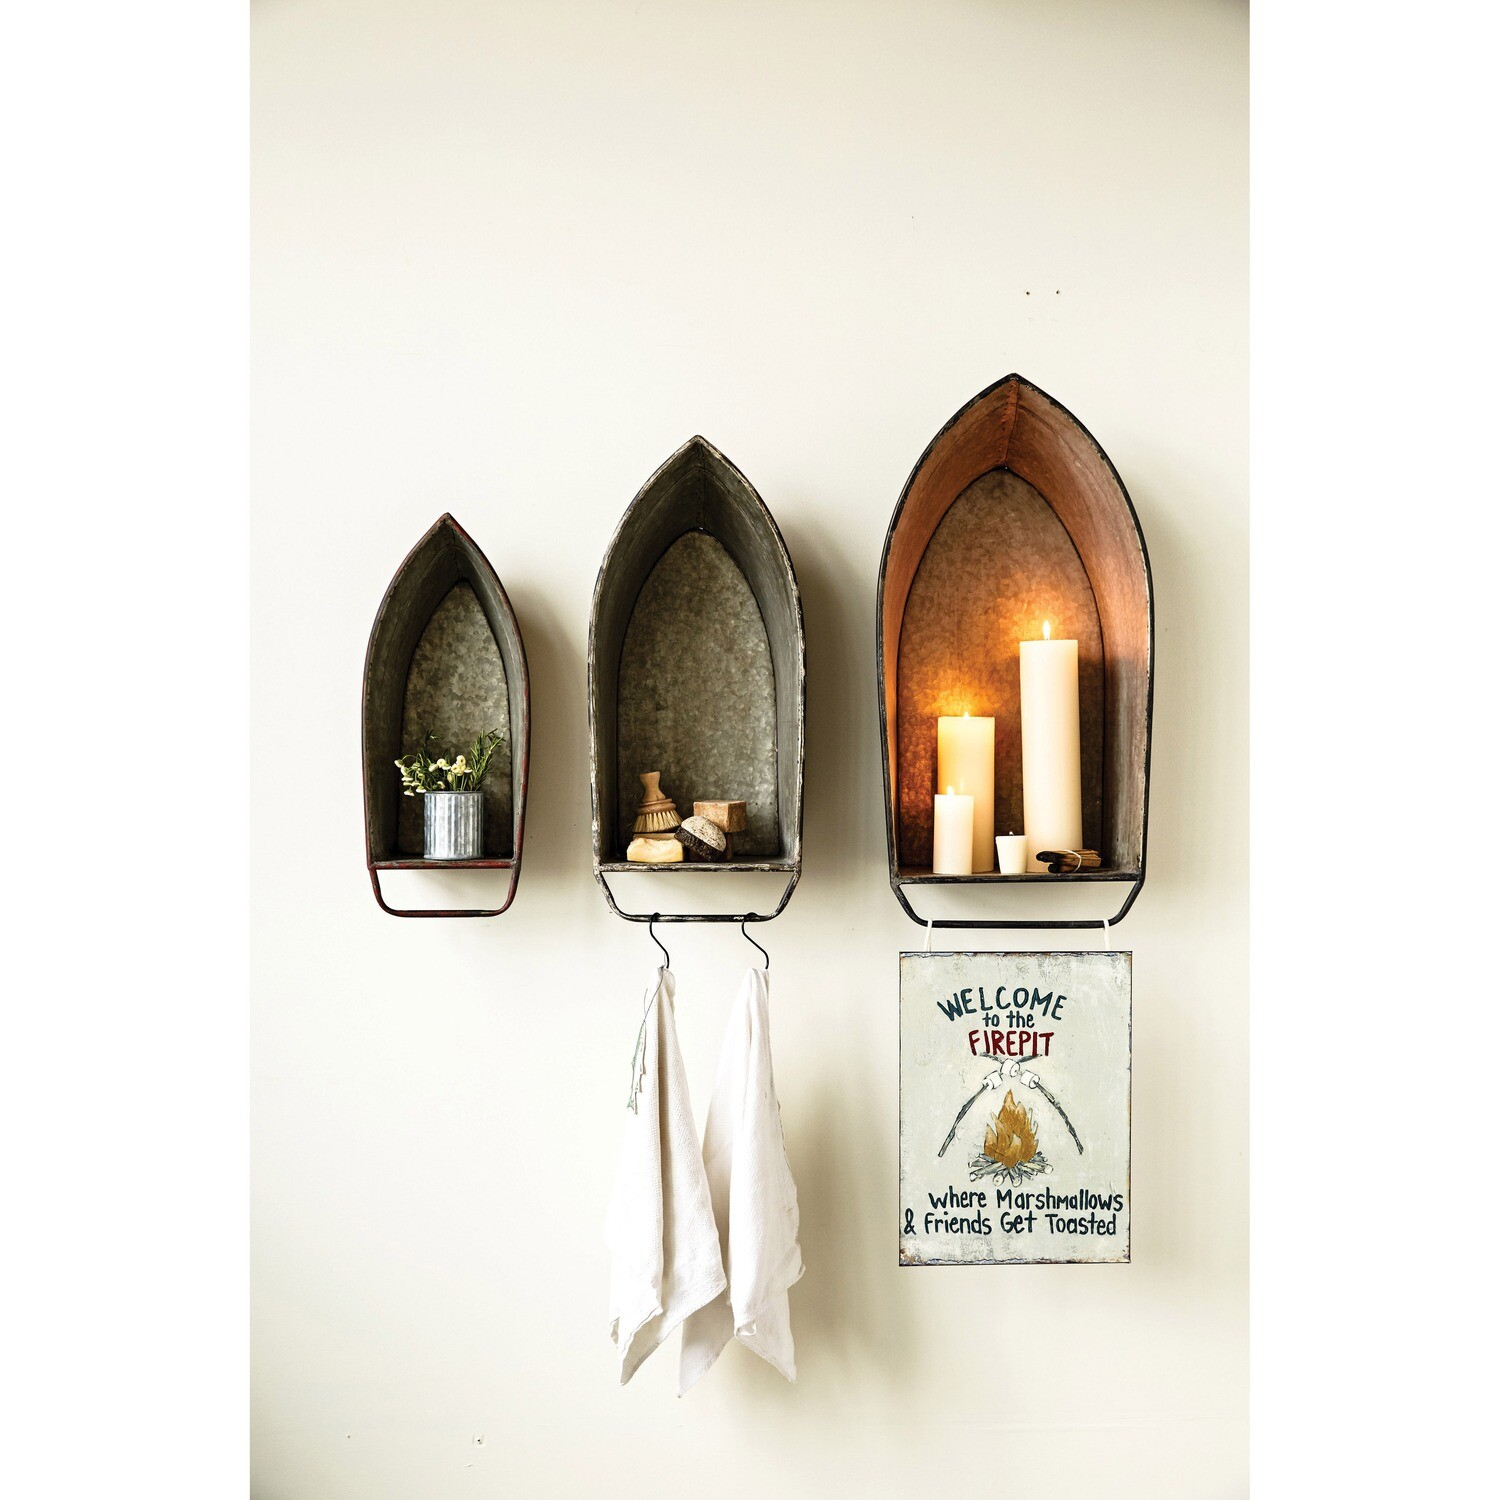 Metal Boat Shaped Wall Décor/Shelves (Set of 3 Colors/Sizes)